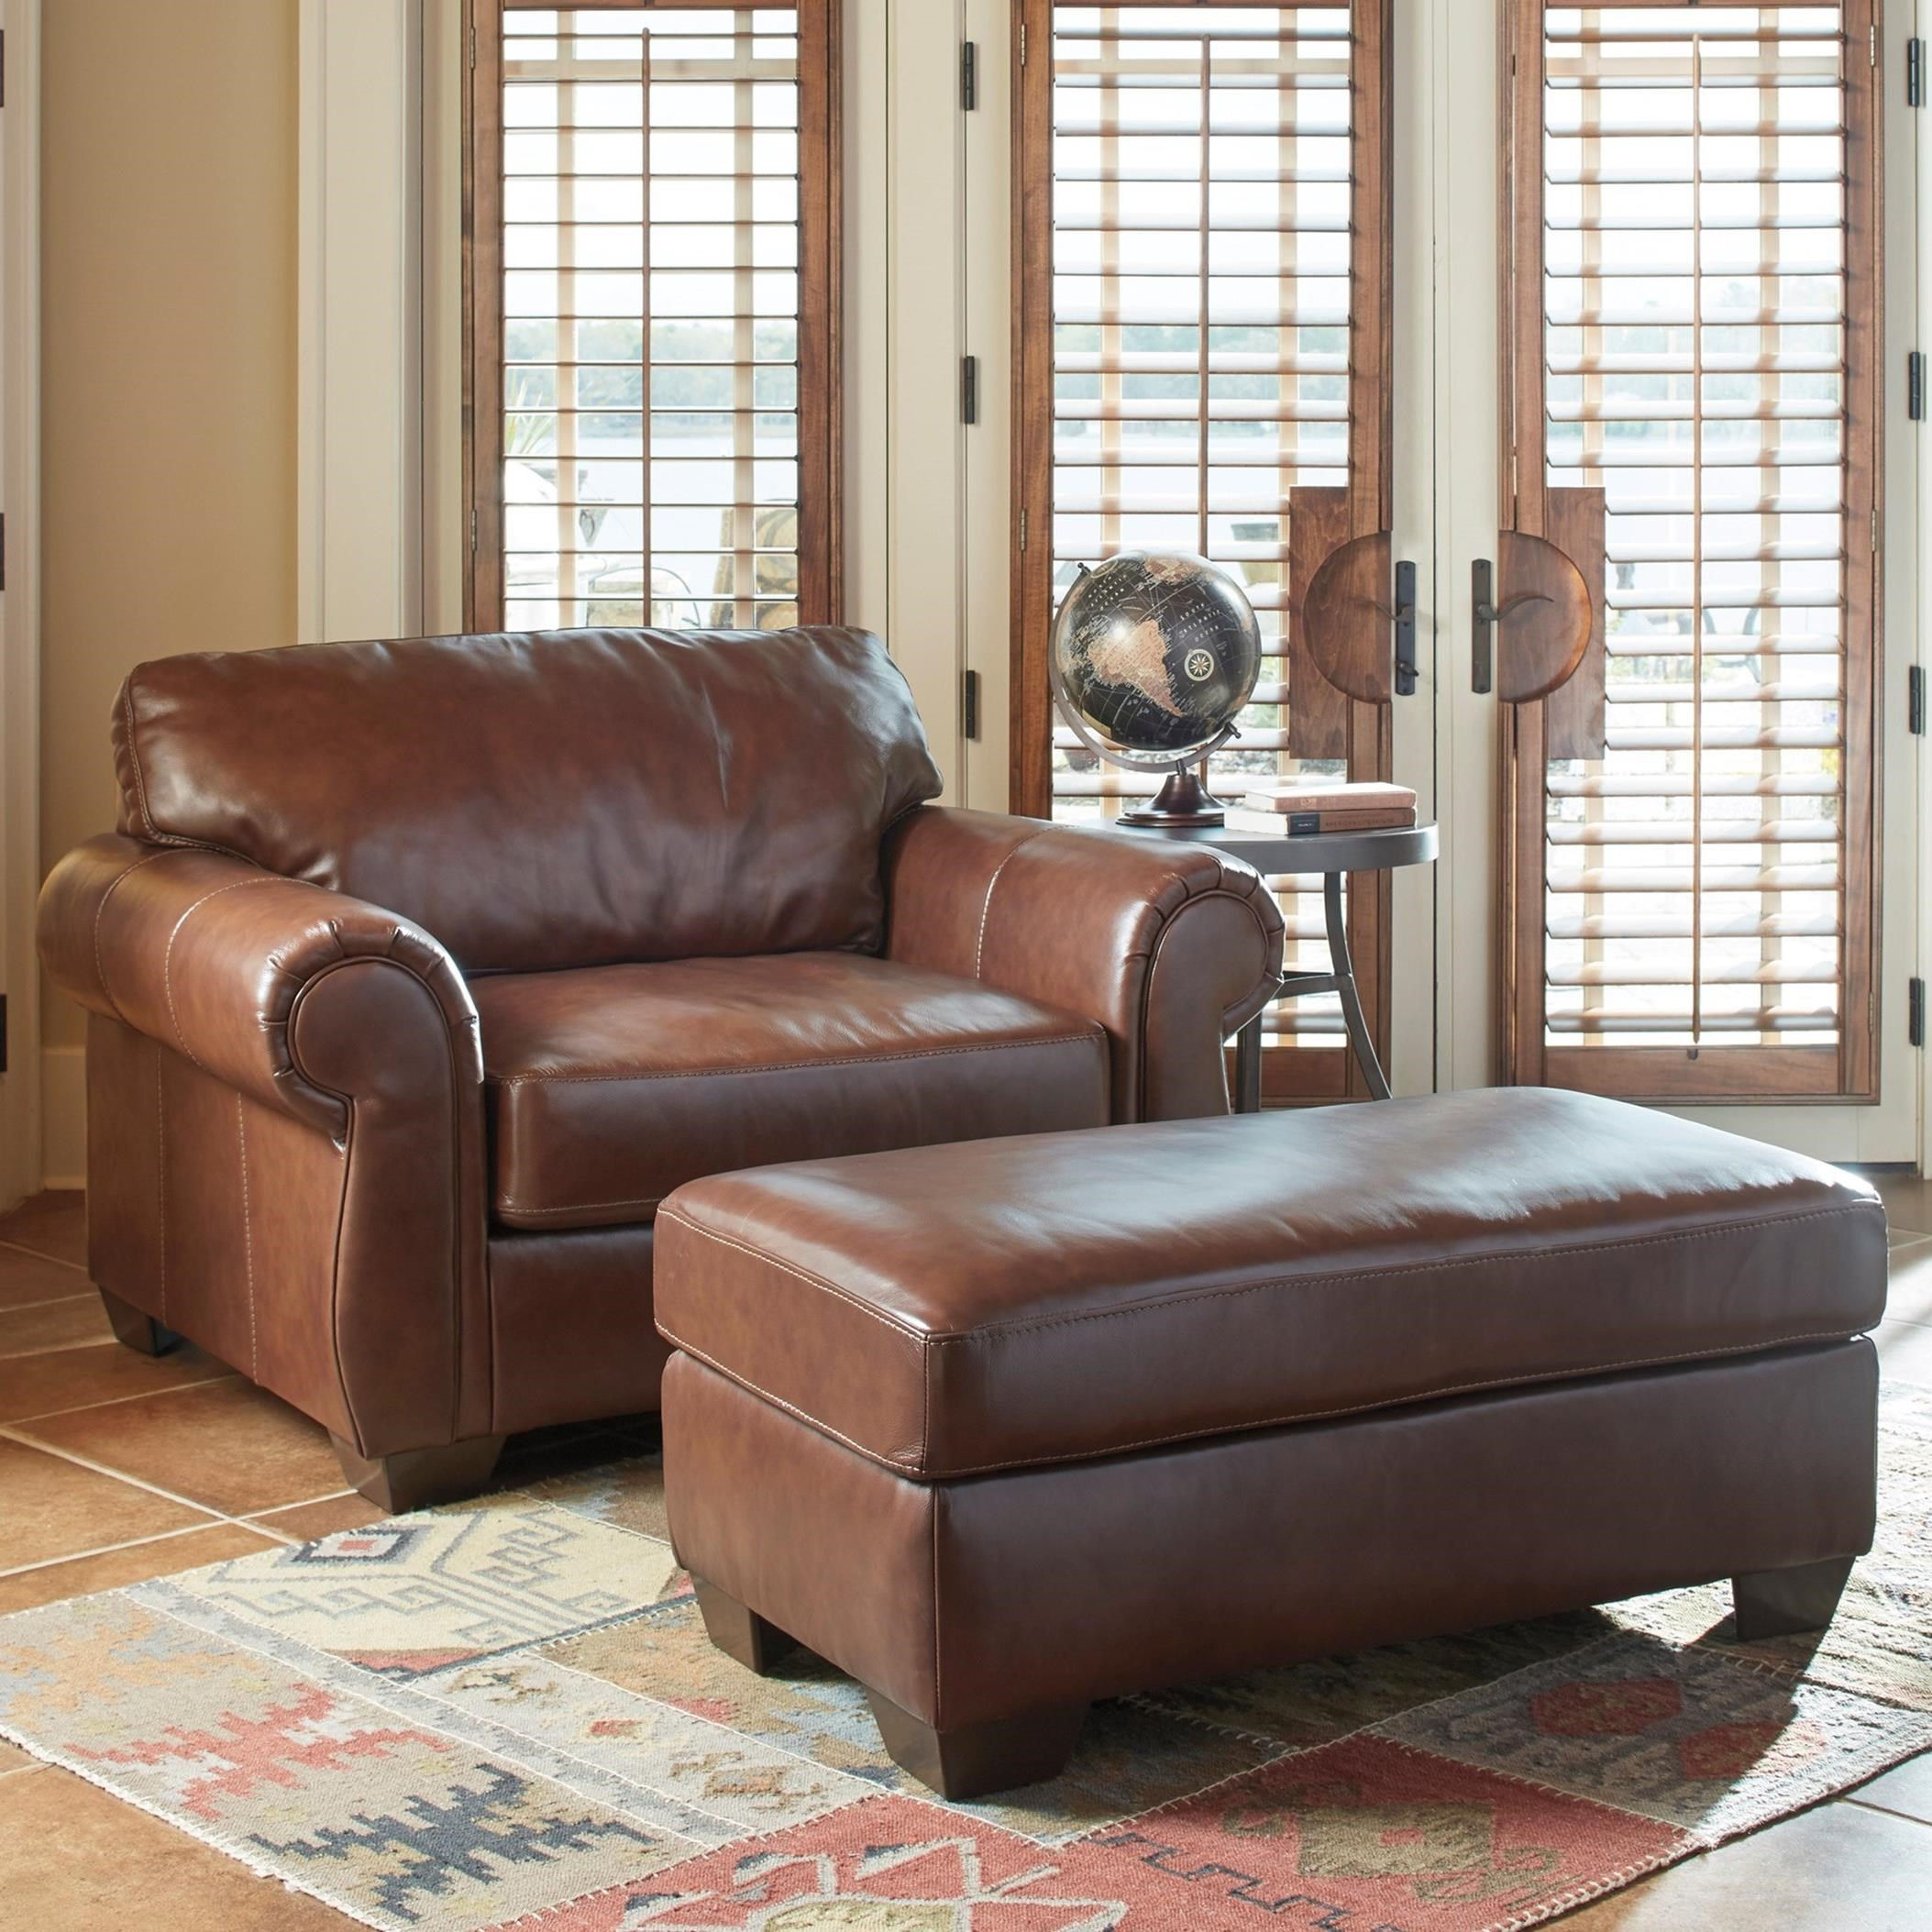 Signature Design By Ashley Lugoro Leather Match Chair And A Half U0026 Ottoman